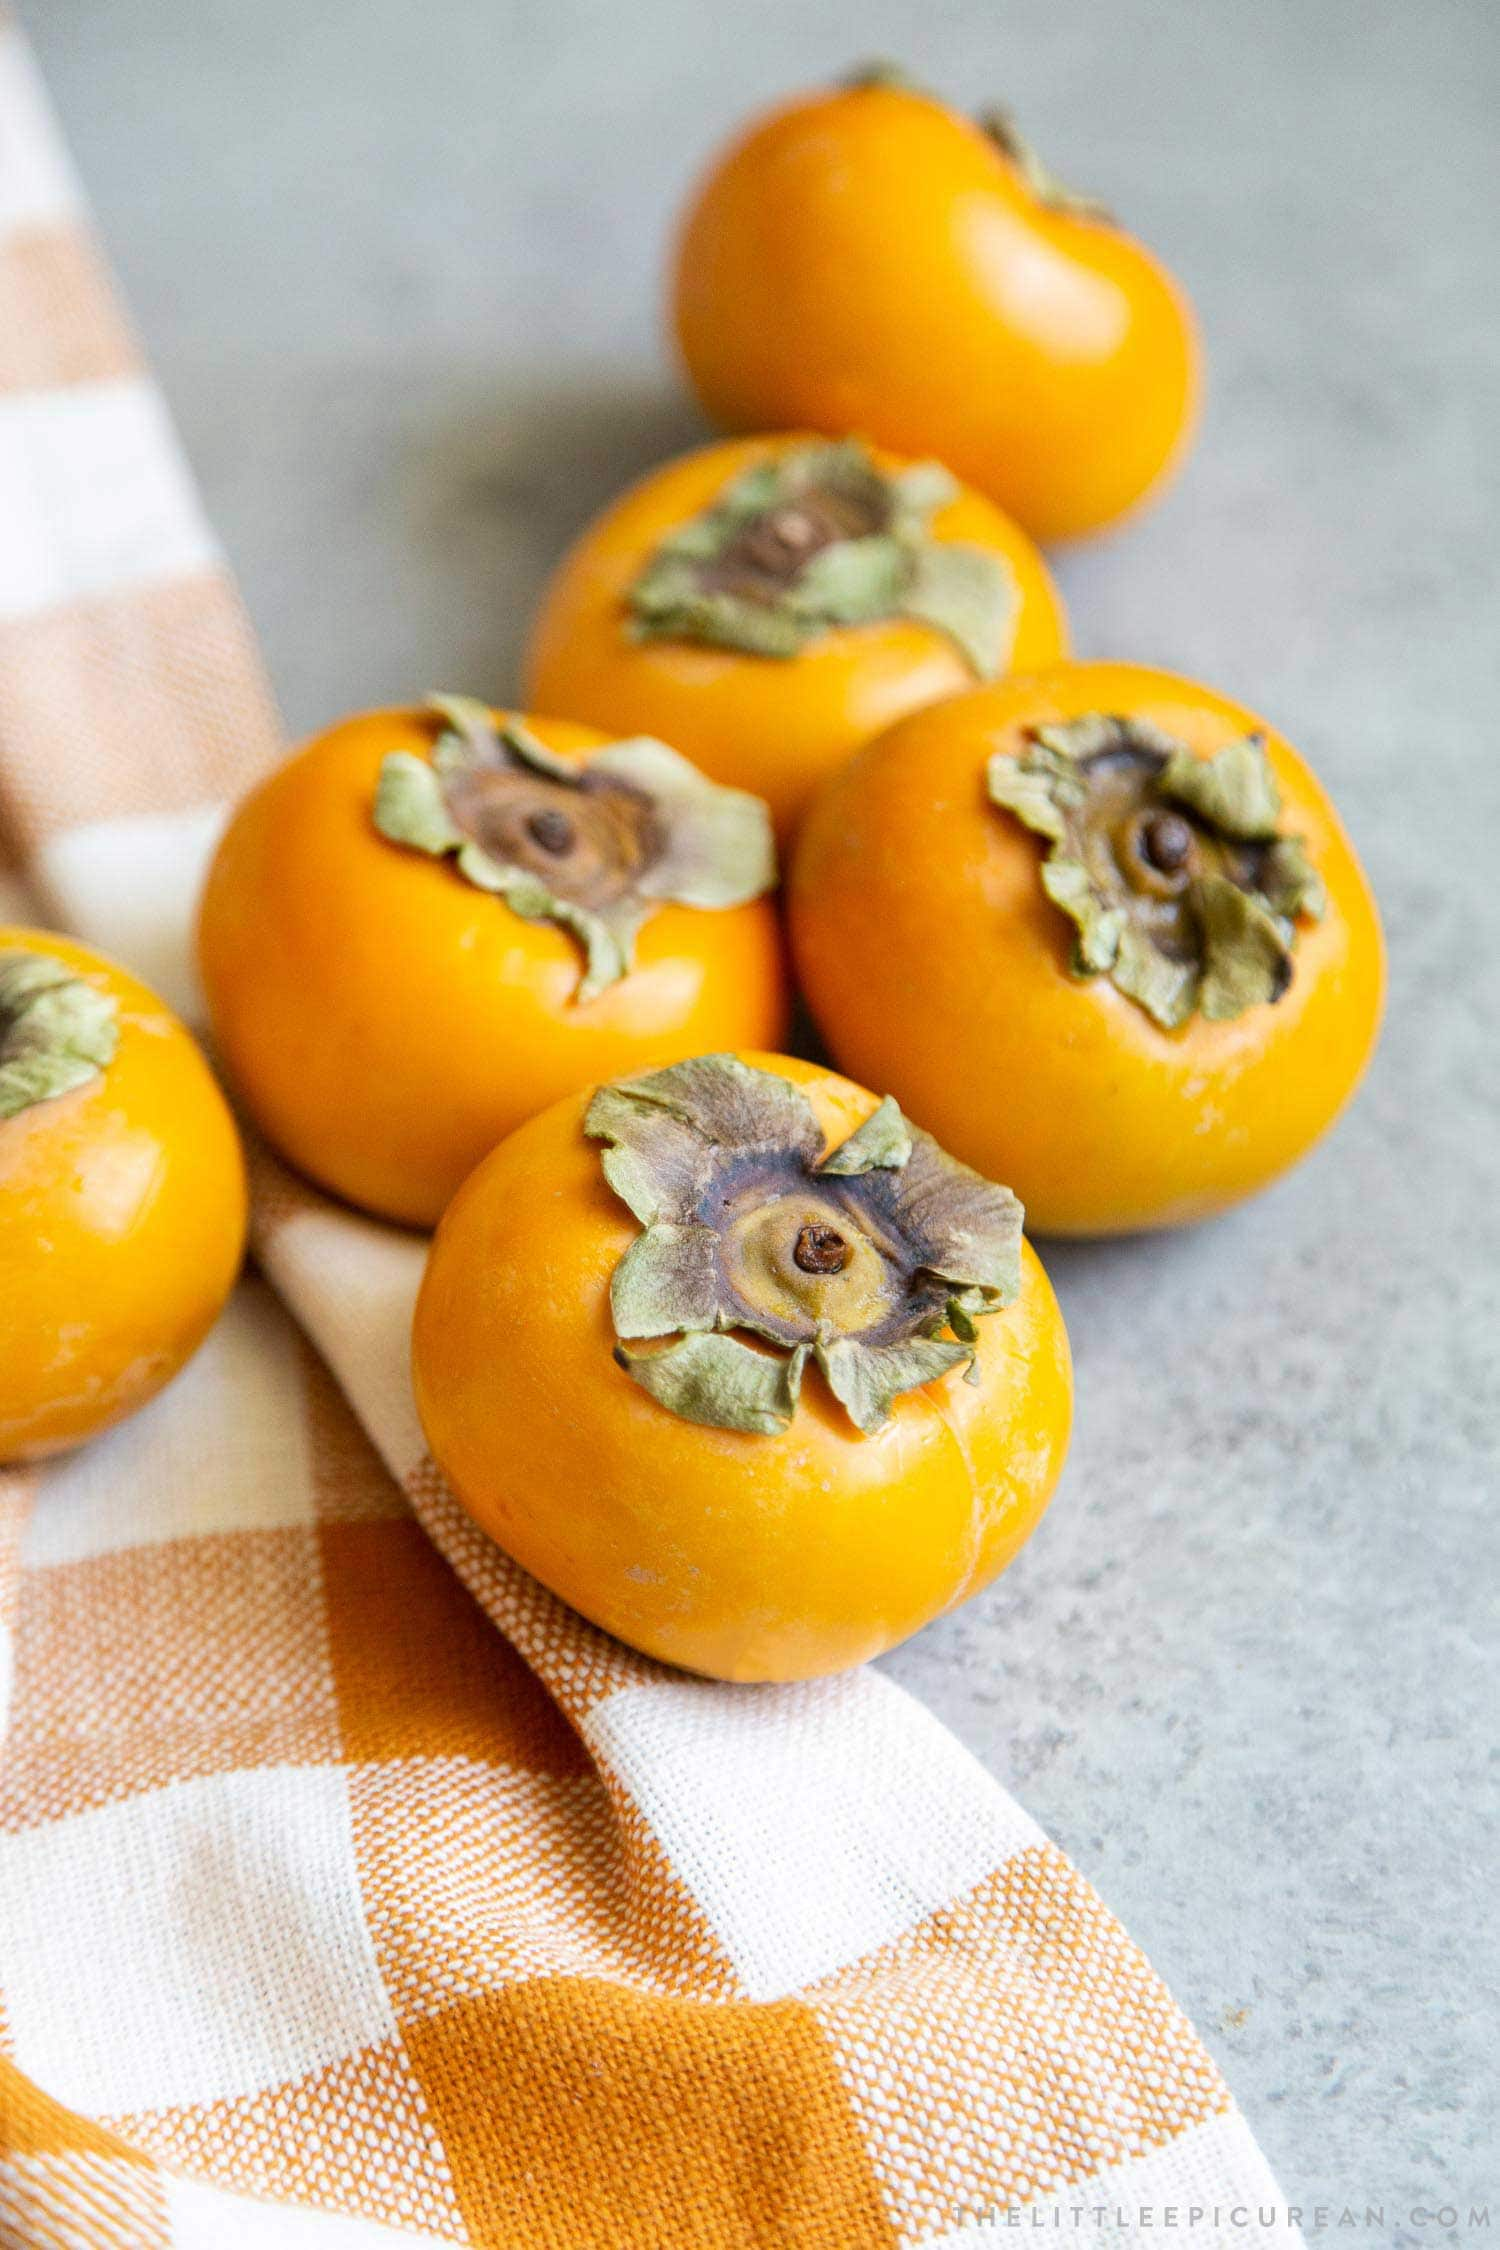 Use Fuyu Persimmons to make coconut persimmon shortcakes. Fuyu is crisp like an apple. Peel the skin and quarter it into wedges. The fuyu is best eaten while it is still firm.